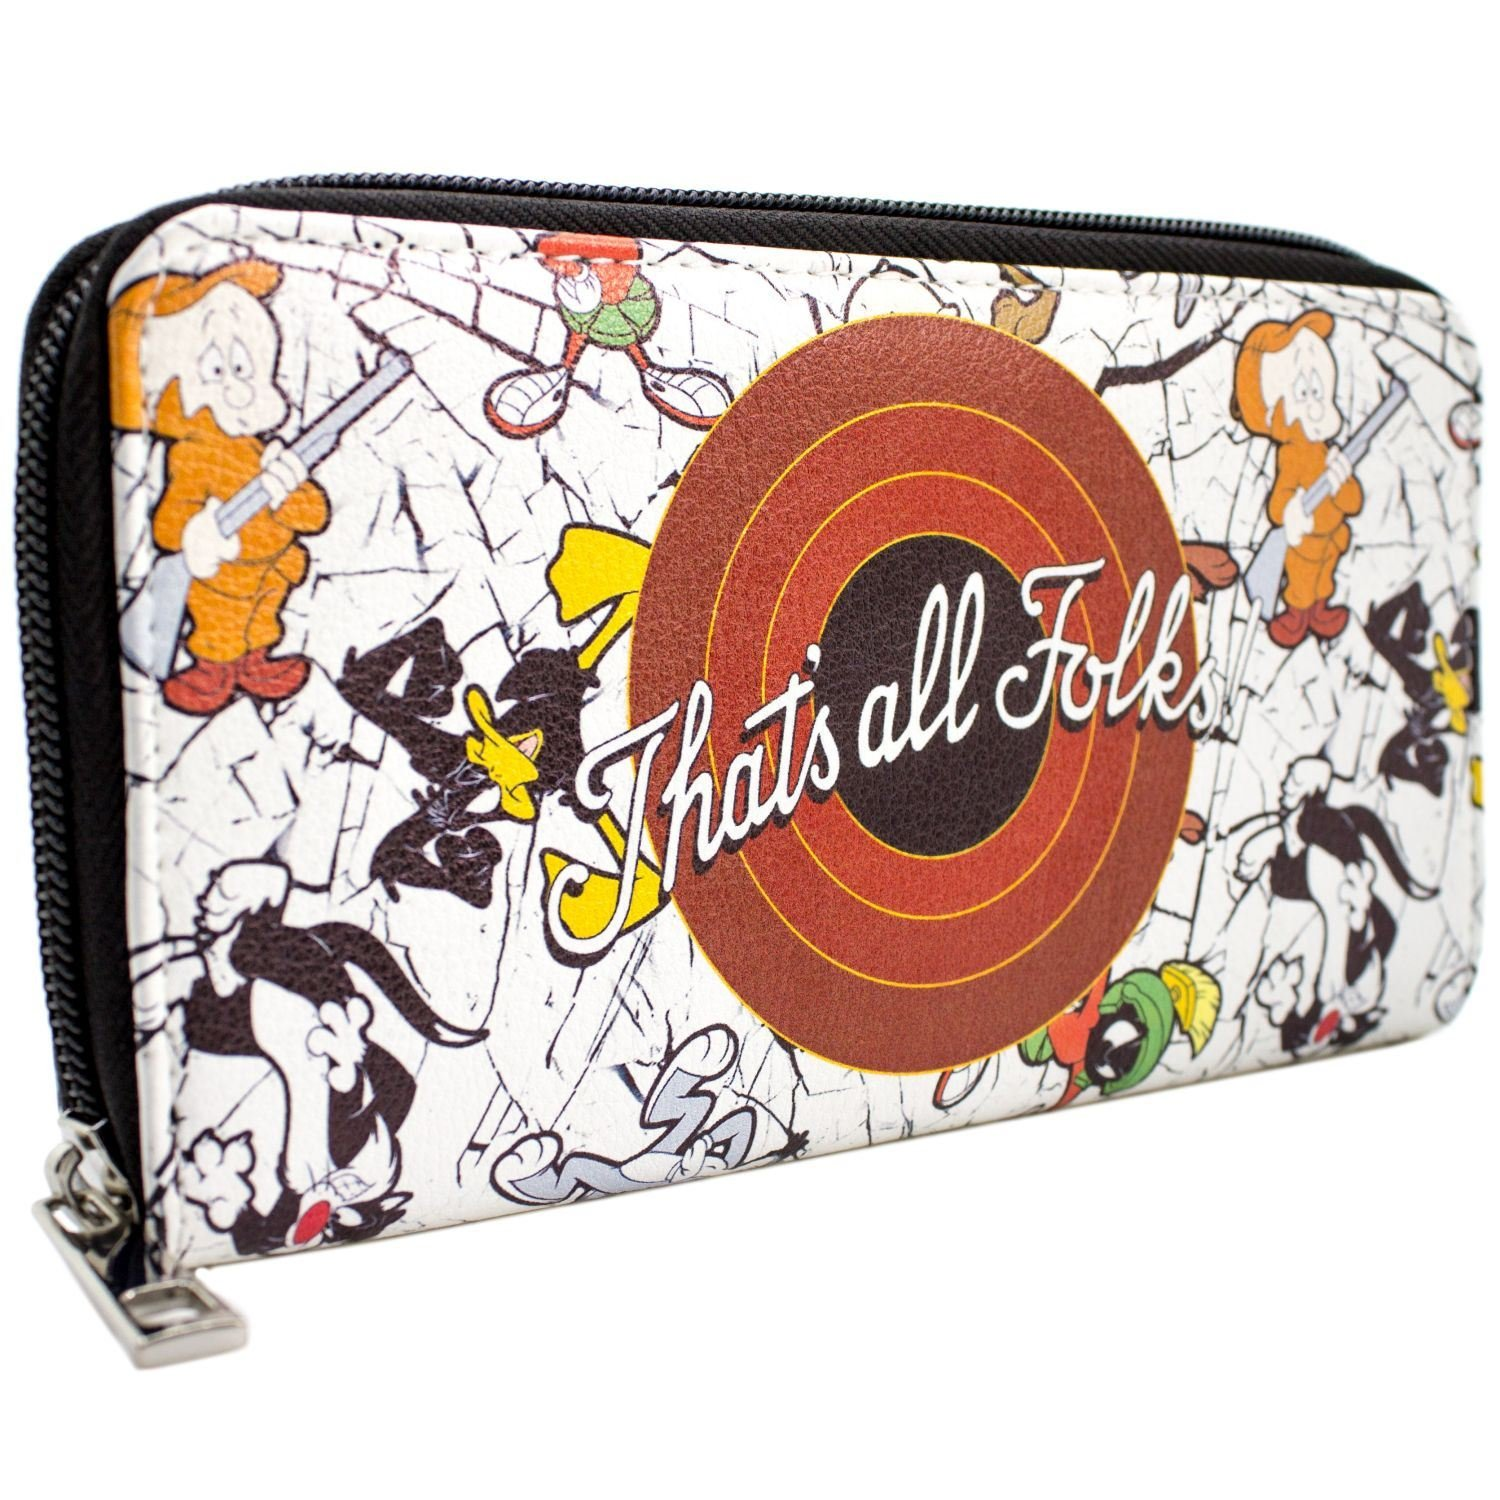 Looney Tunes That's All Folks! Bugs & Daffy Blanc Portefeuille